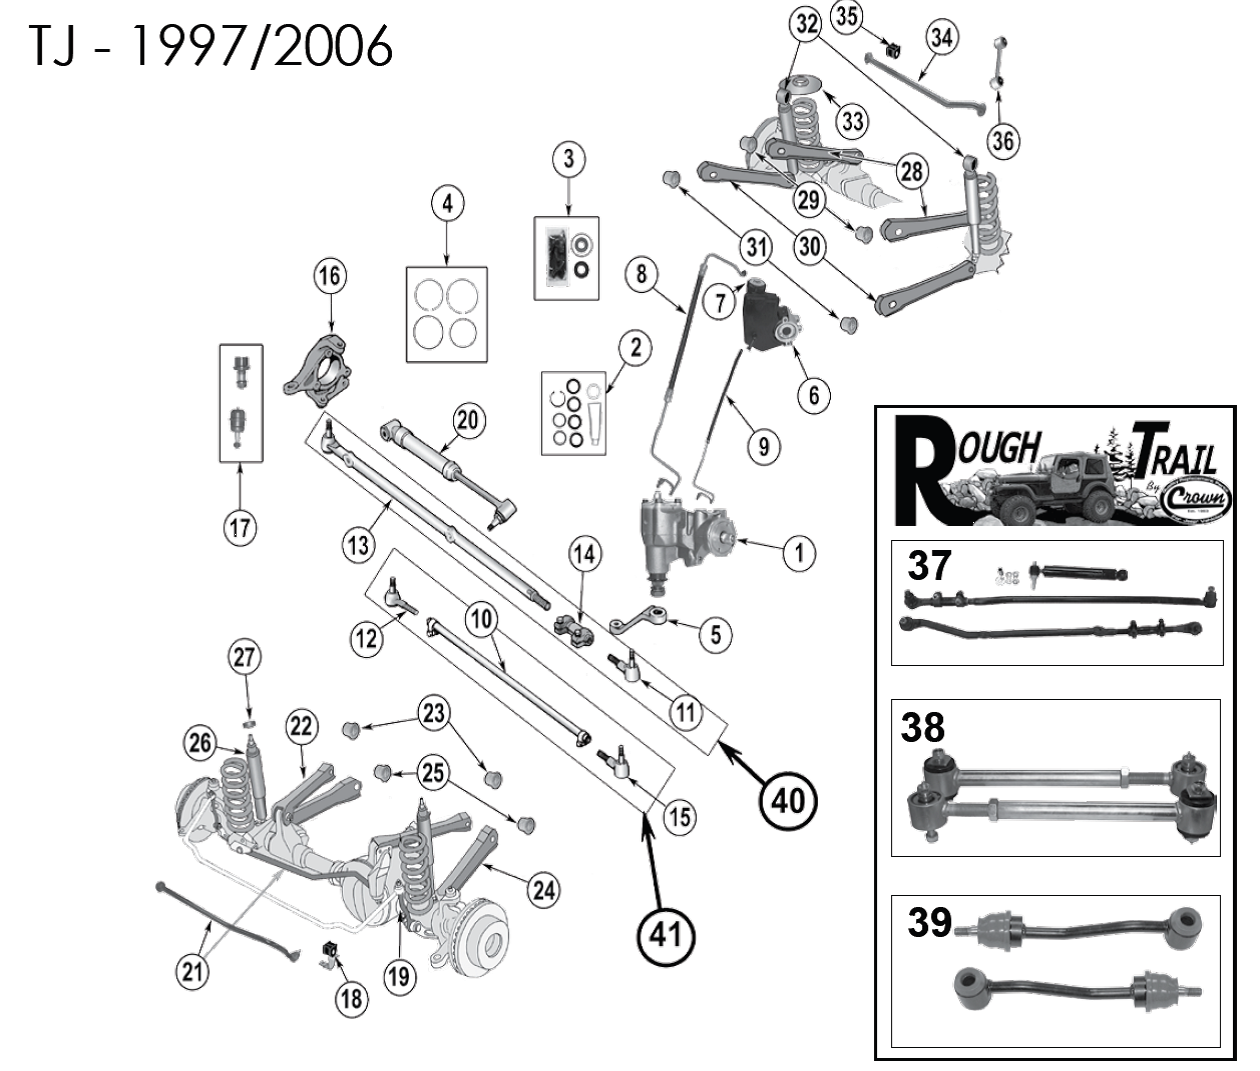 wiring diagram jeep wrangler jk wiring discover your wiring xj tie rod diagram fuse diagram for 1986 jeep grand wagoneer in addition chevy hhr radio wiring